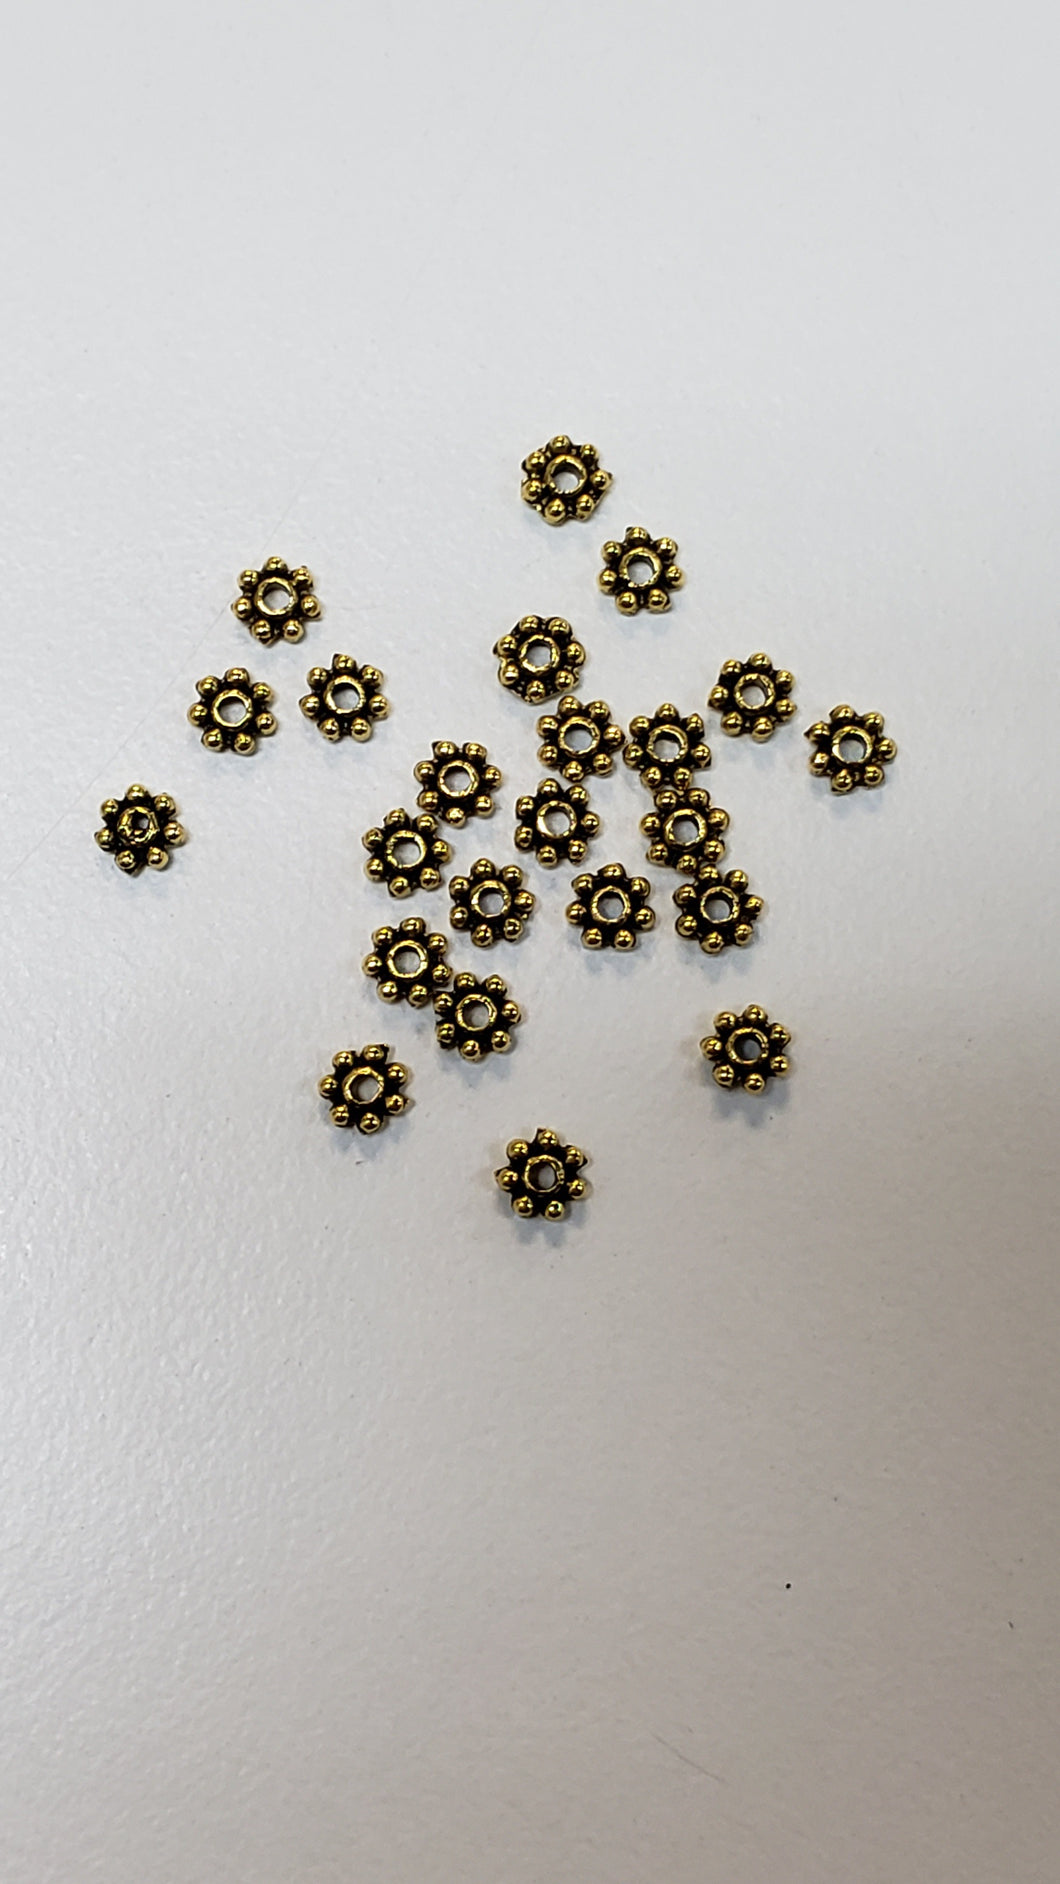 Pewter 1x4mm Gold Daisy Spacers